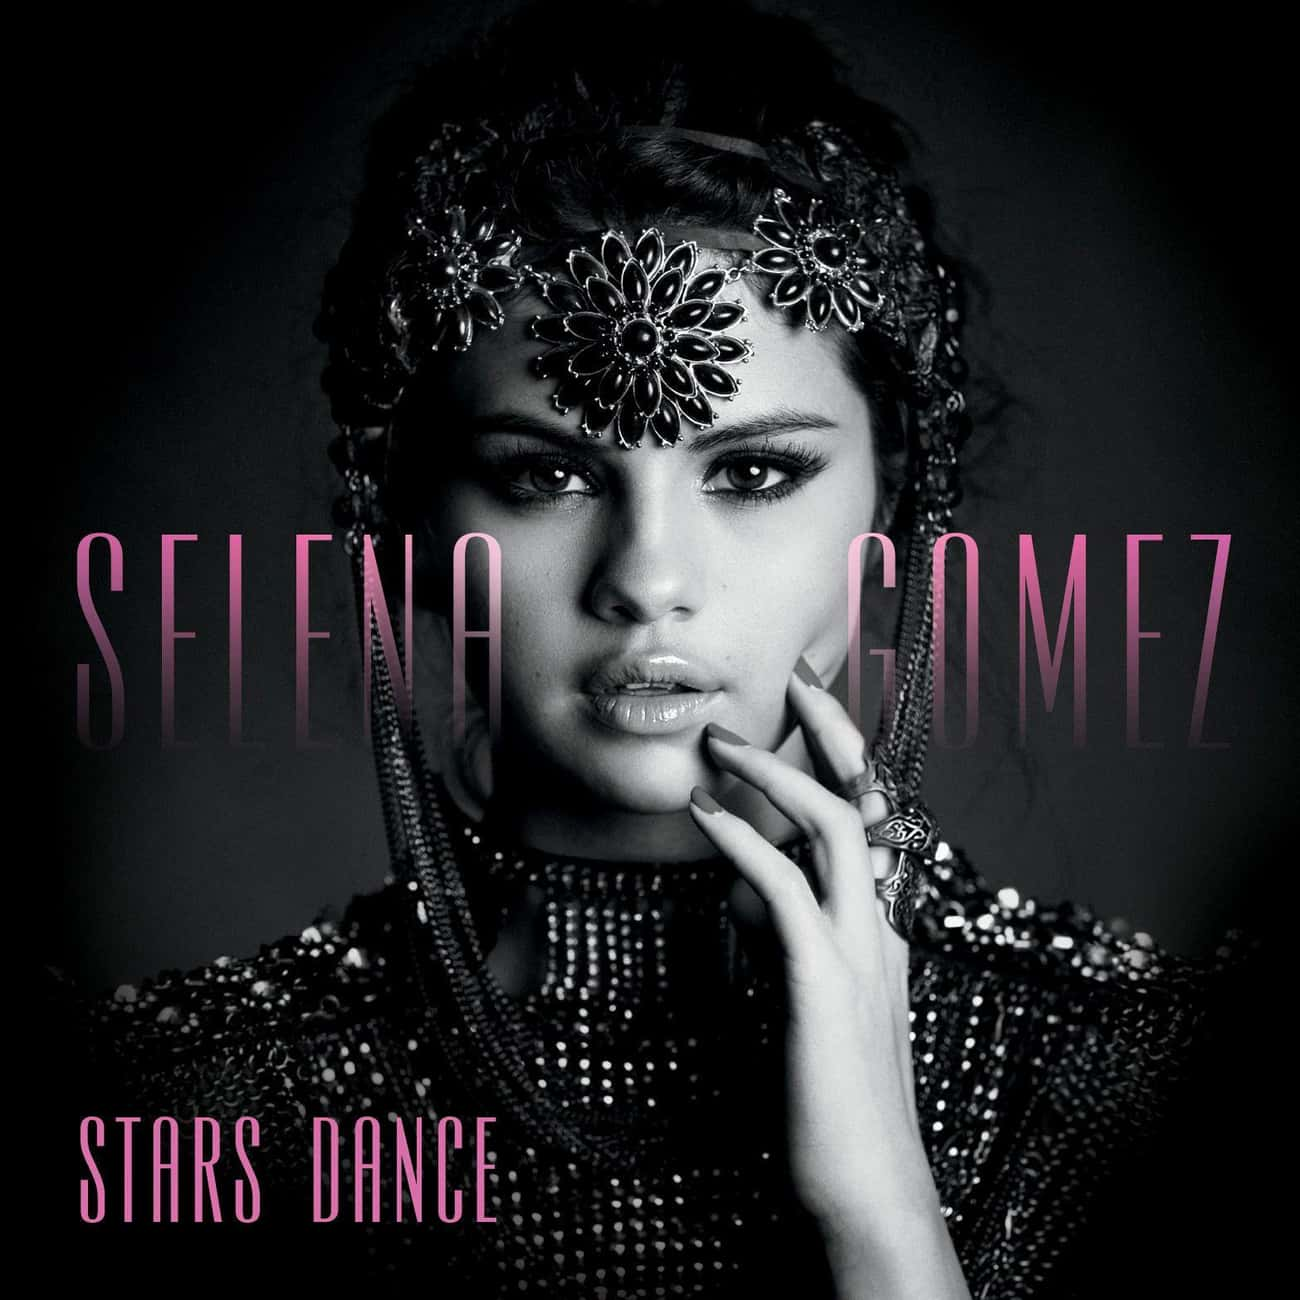 Stars Dance is listed (or ranked) 3 on the list The Best Selena Gomez Albums, Ranked